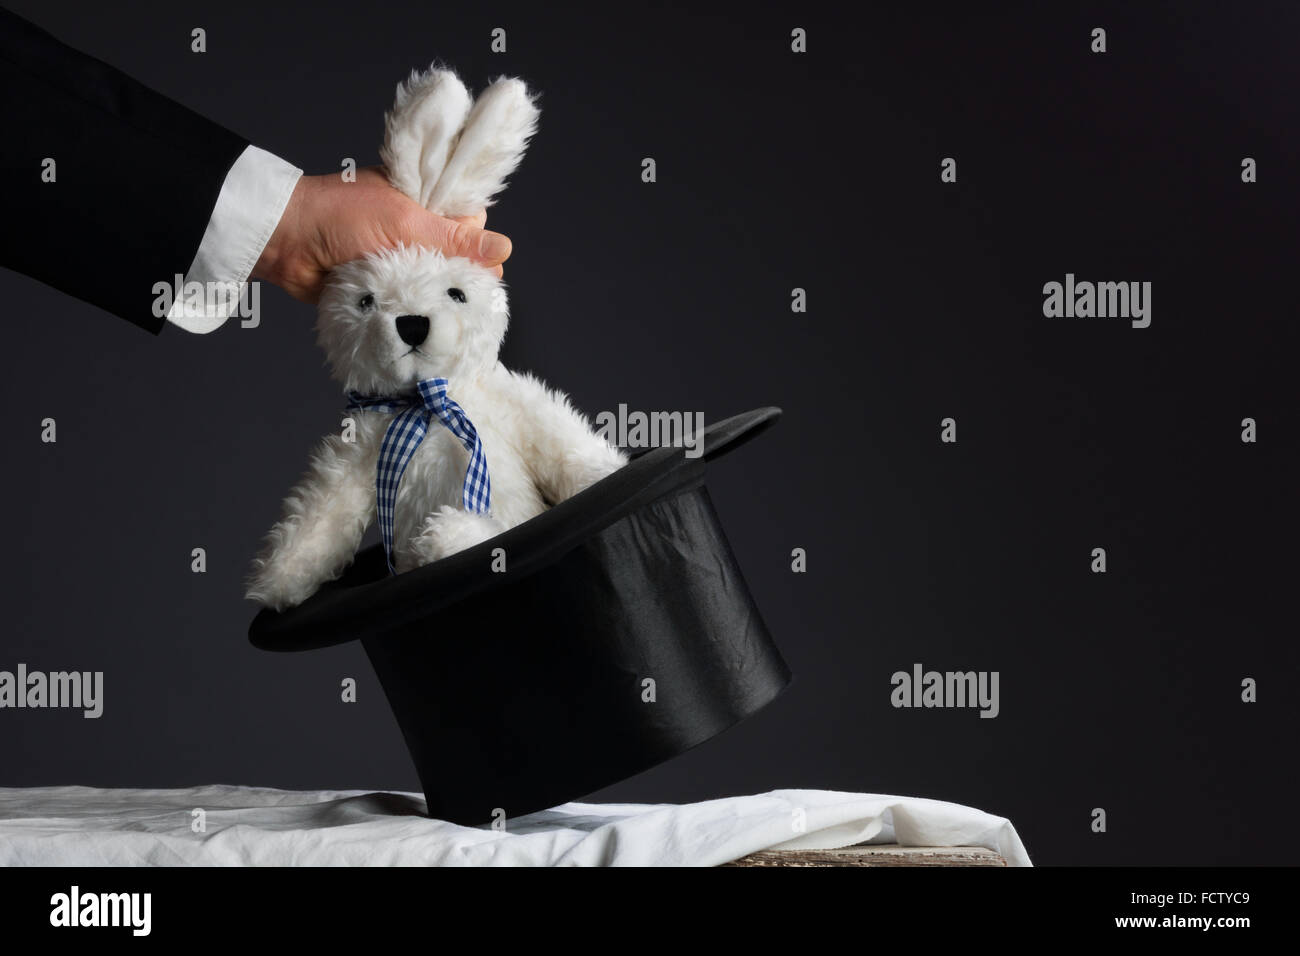 Man in suit pulling a rabbit out of the topper hat - Stock Image